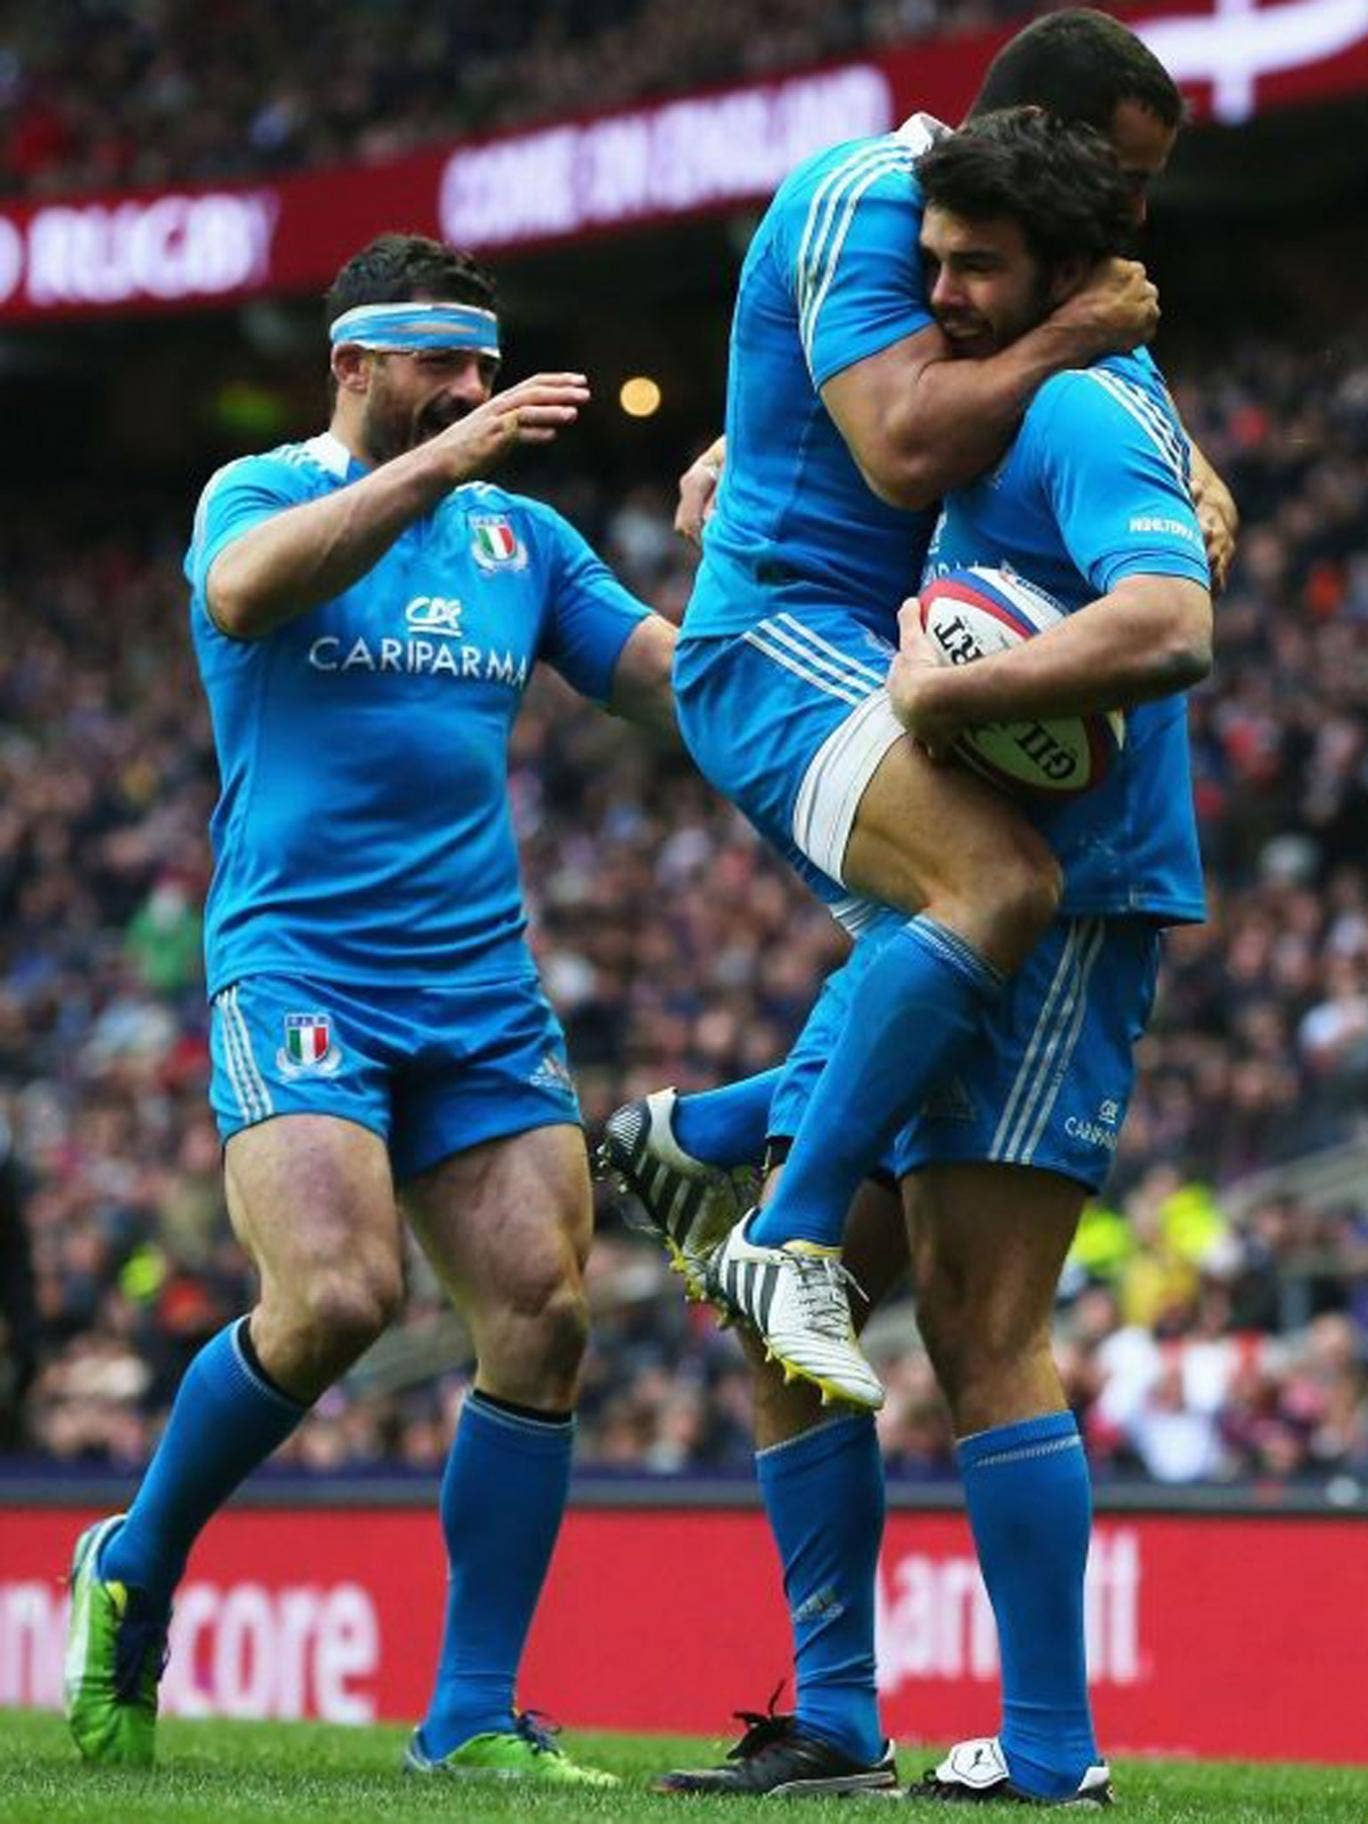 Tom McLean (far right) celebrates his try with Italy team-mates